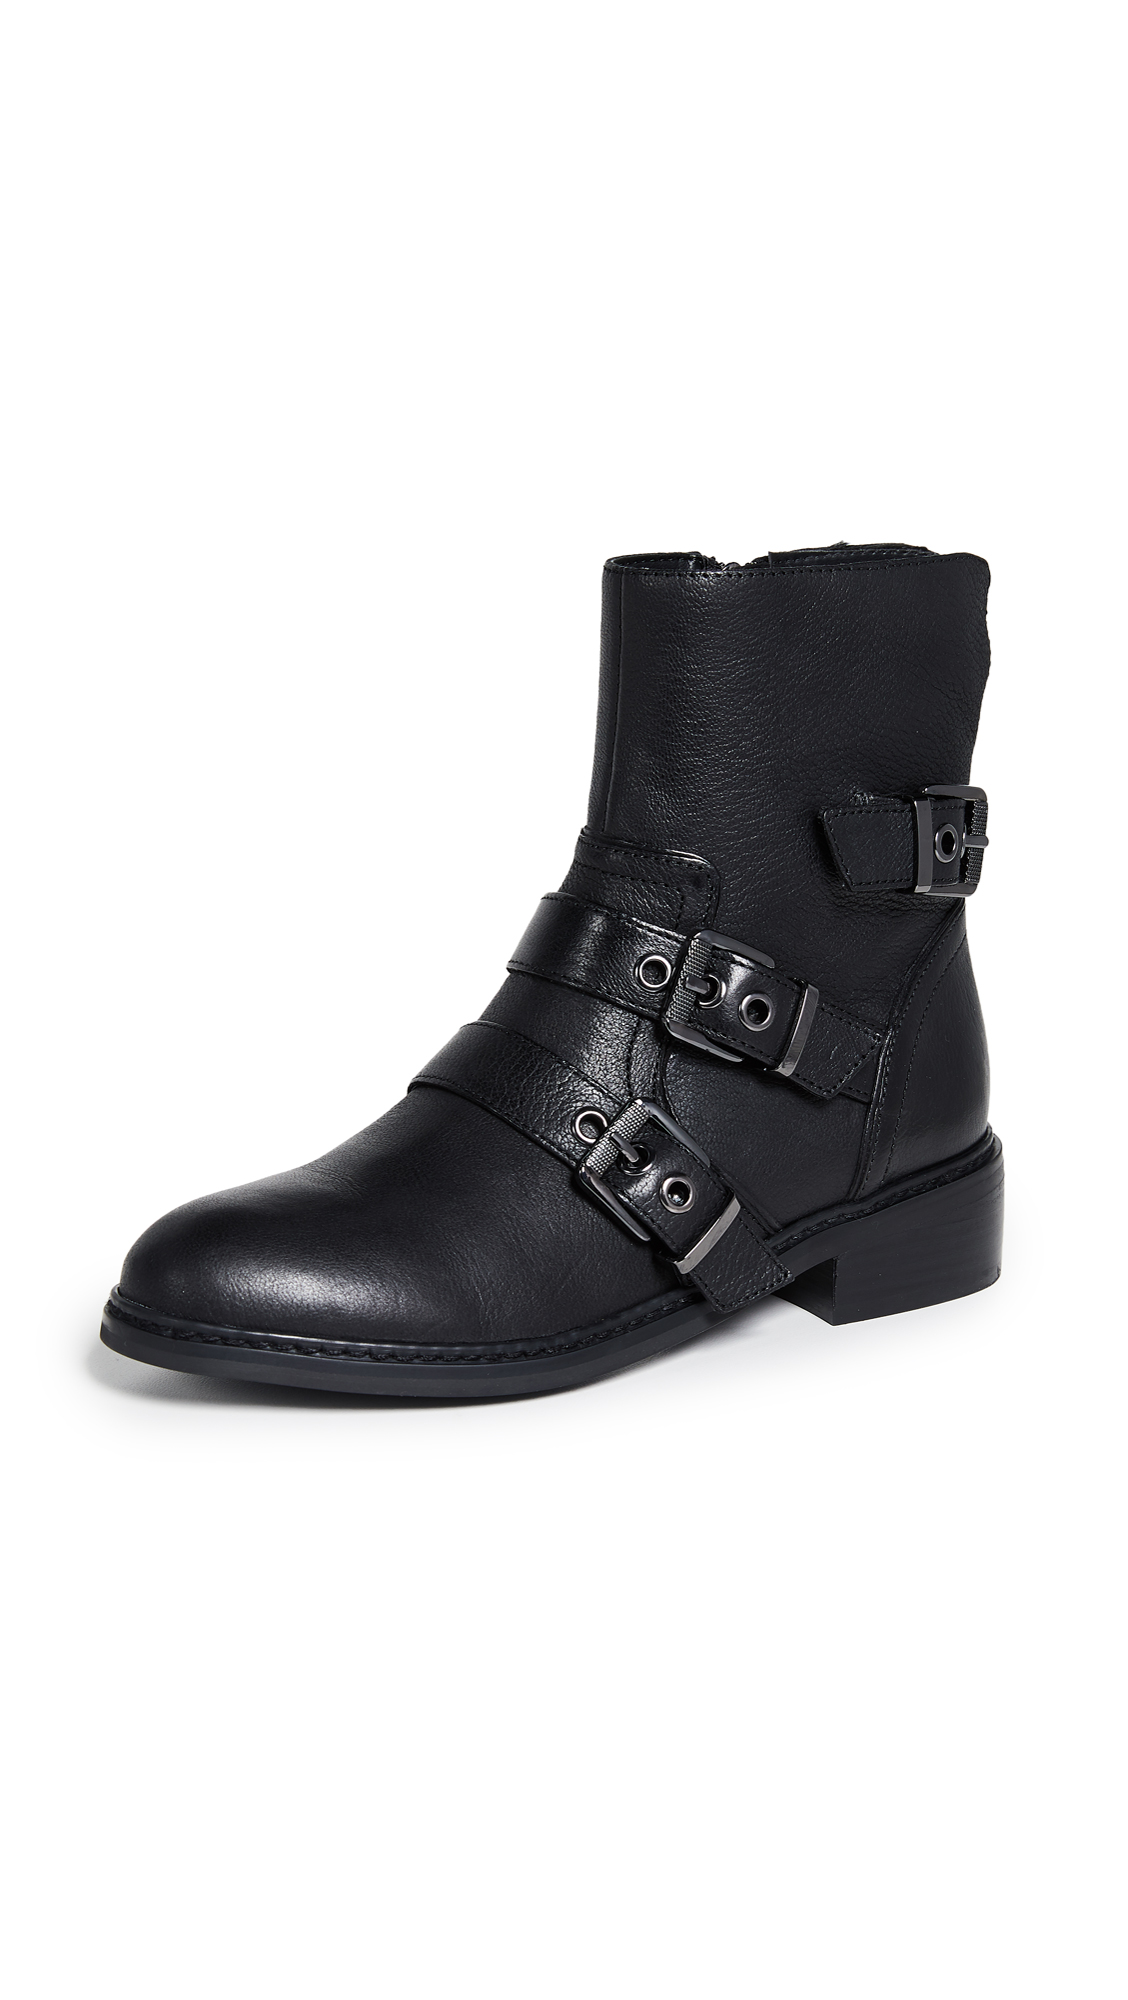 KENDALL + KYLIE Nori Moto Boots